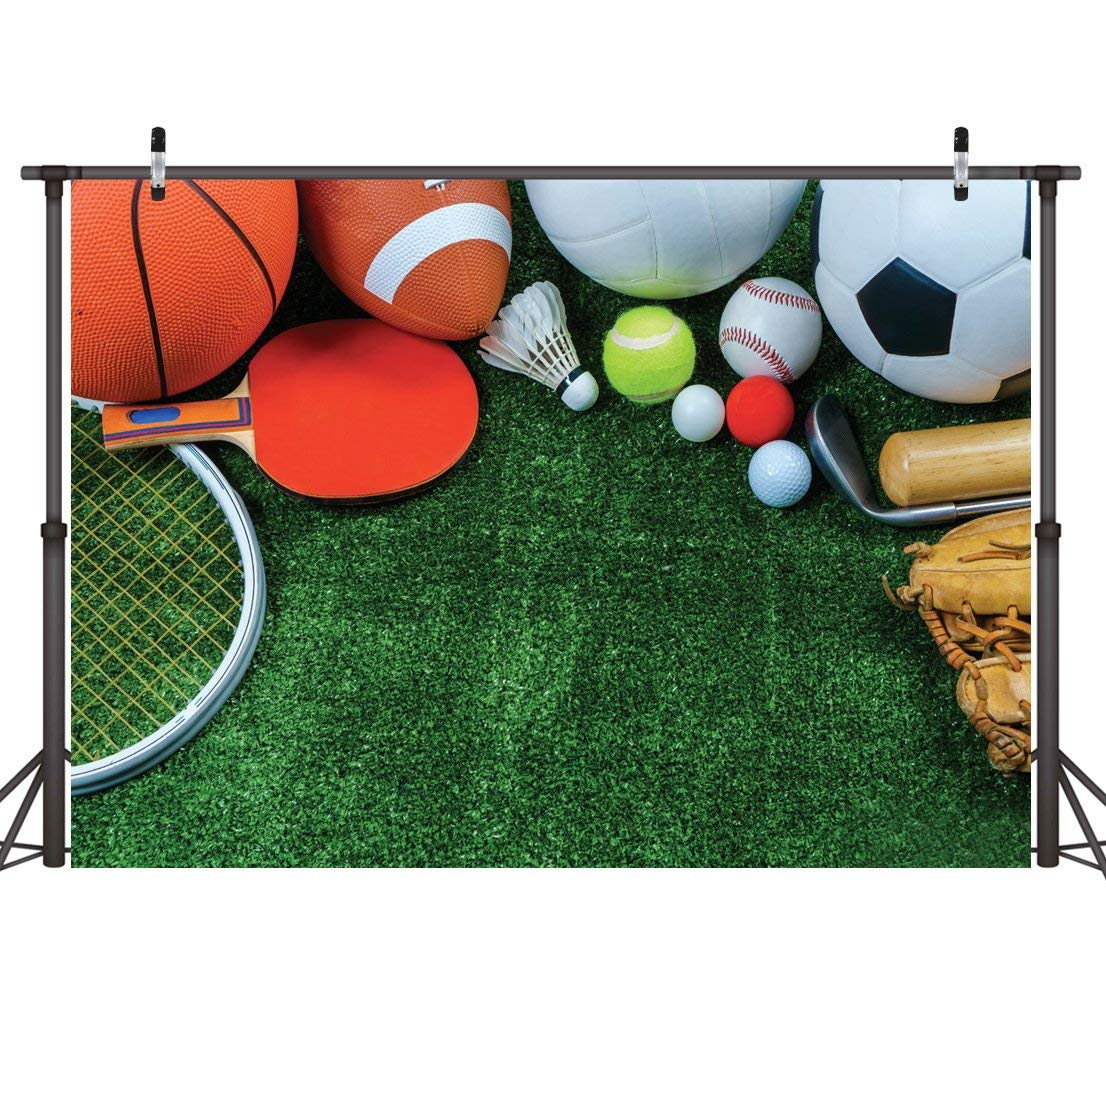 LYWYGG 7x5ft Photography Backdrops Sports Goods Grassland Spotrs Backdrop for Studio Prop Photo Background Photography Props CP-14